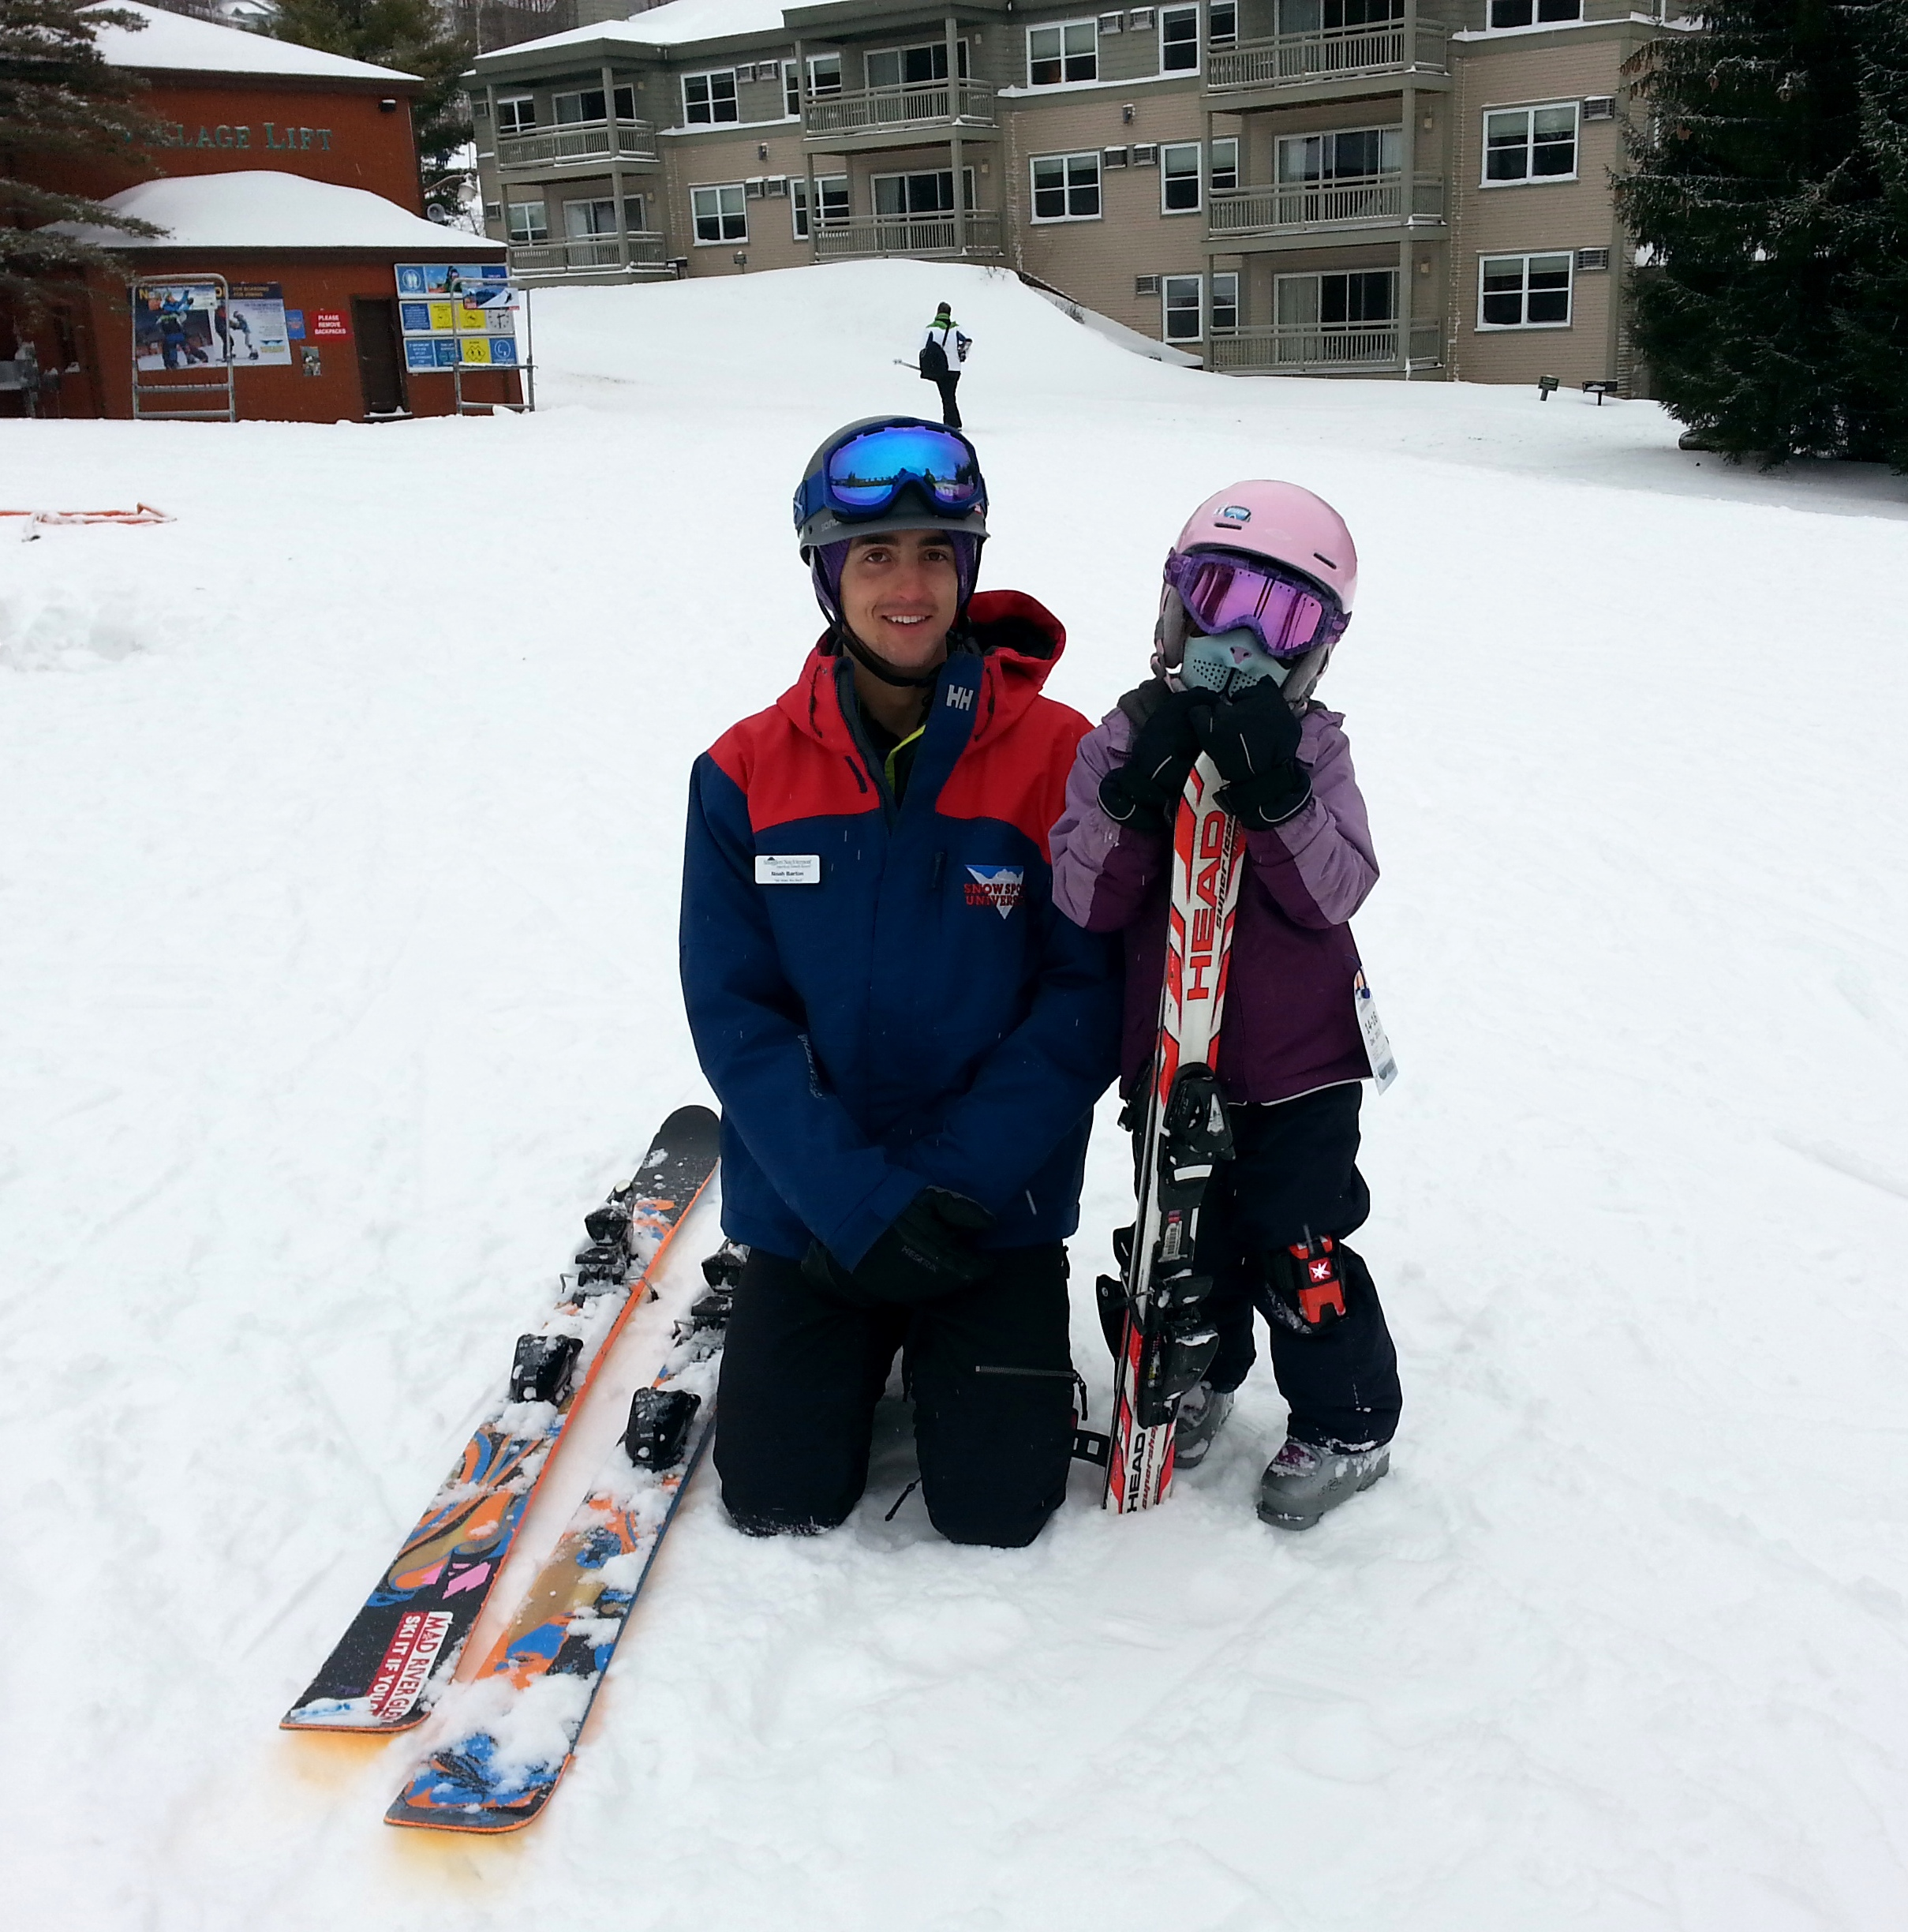 Ski and Ride Programs for Kids of All Ages at Smugglers' Notch